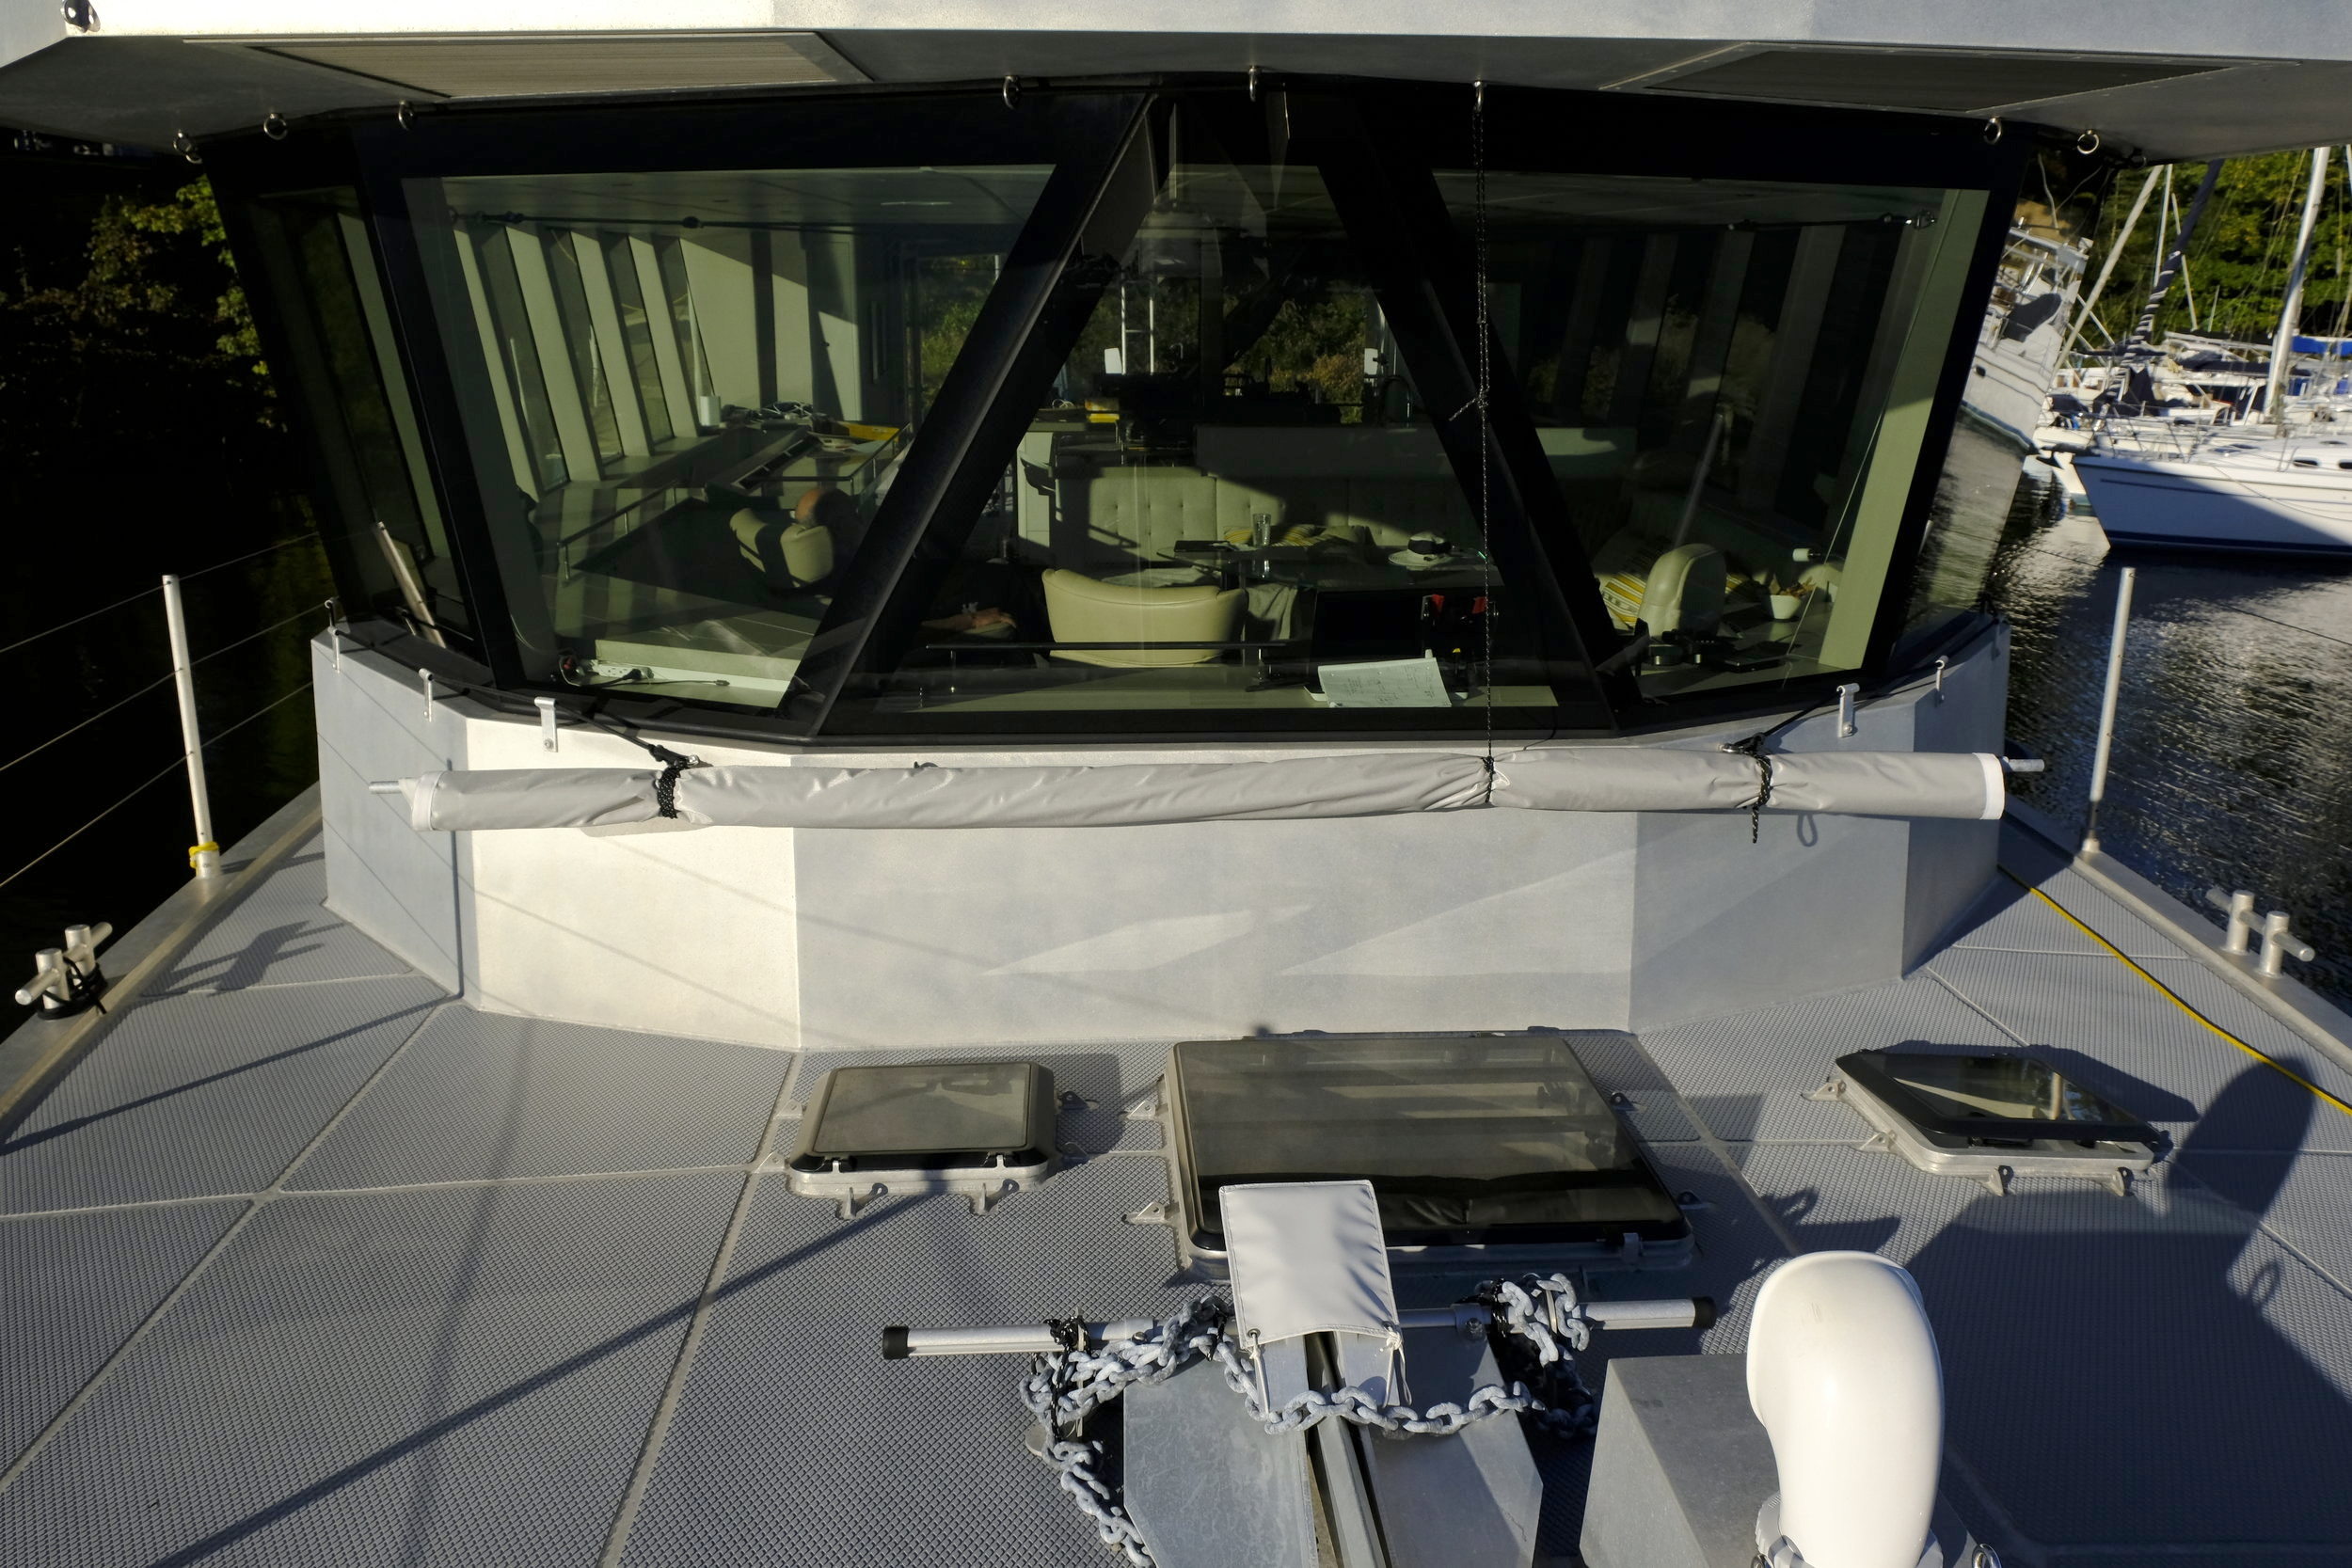 This awning covers the forward accommodations and is very effective at anchor with the hatches open in the tropics. I don't know why more boats take advantage of such simple ways to keep temperatures down in paradise.